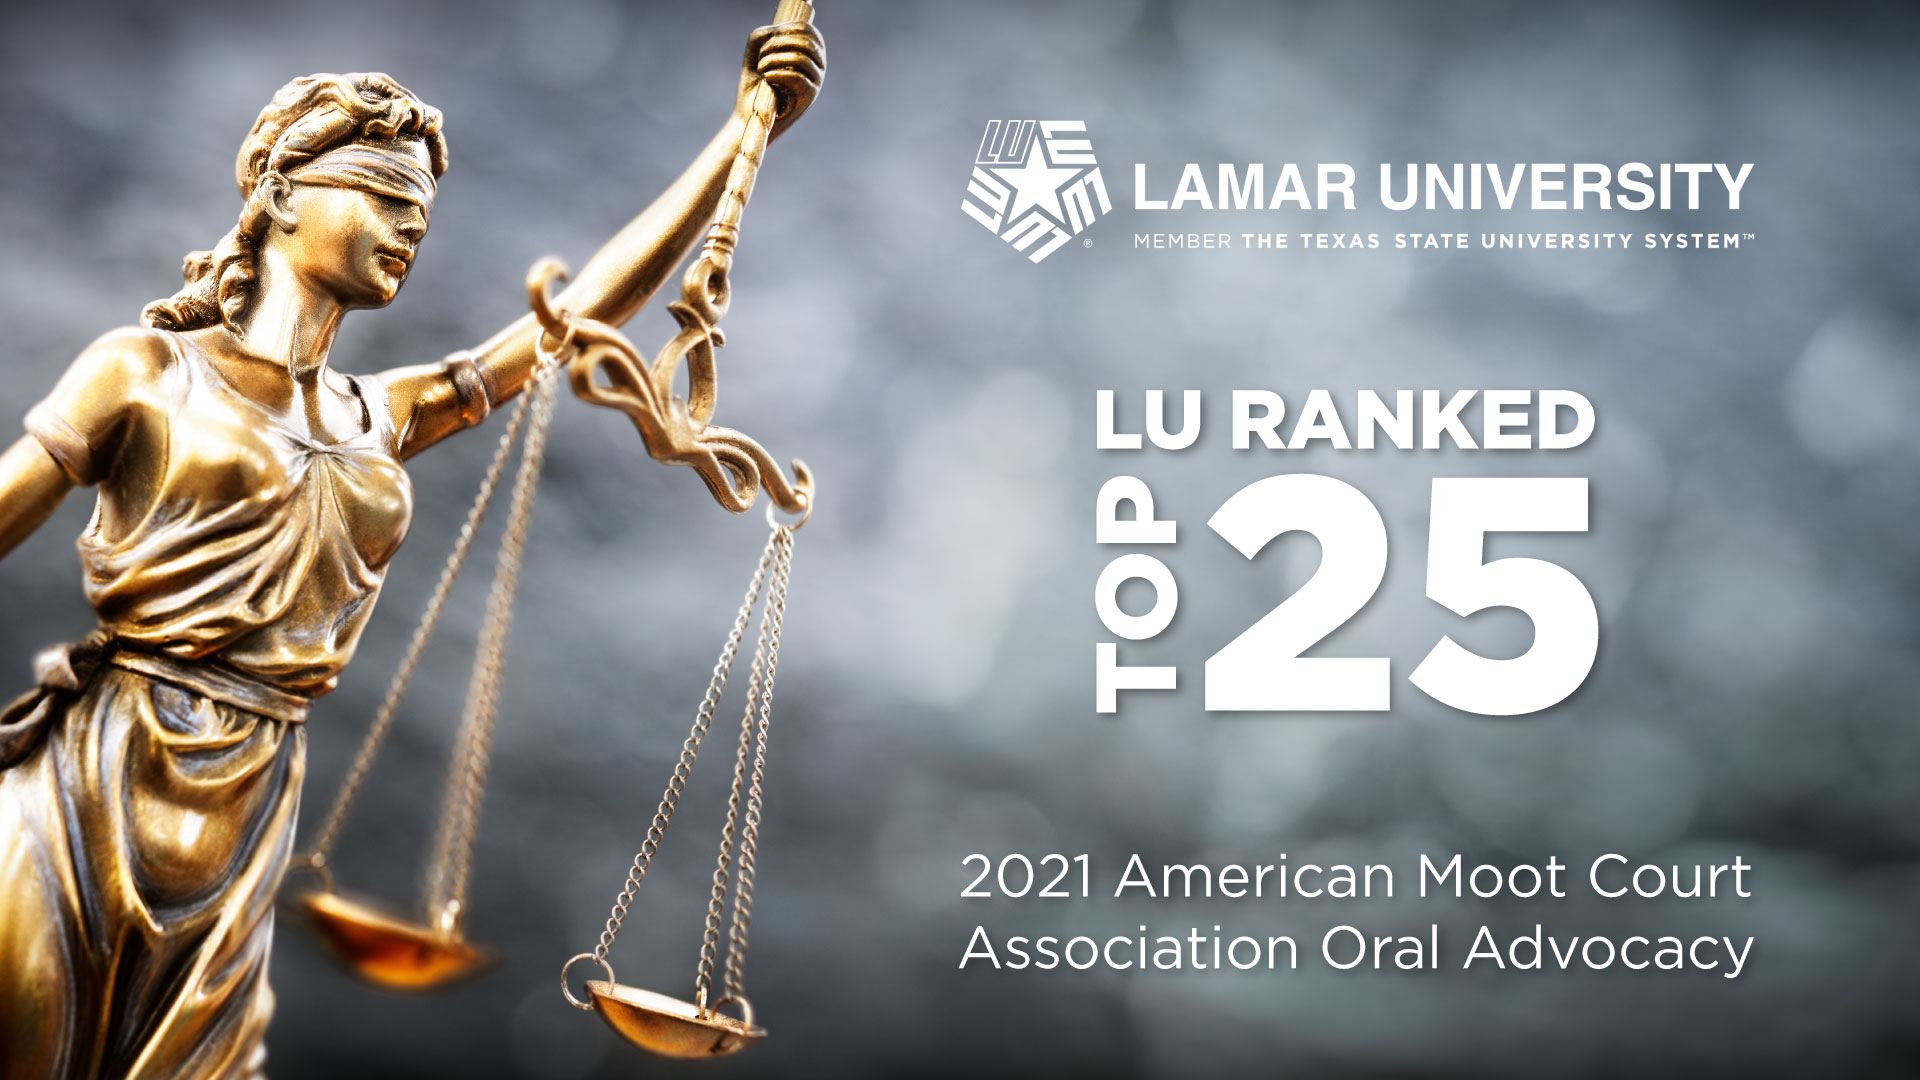 LU Ranks in top 25 in the American Moot Court Association Oral Advocacy for 2021